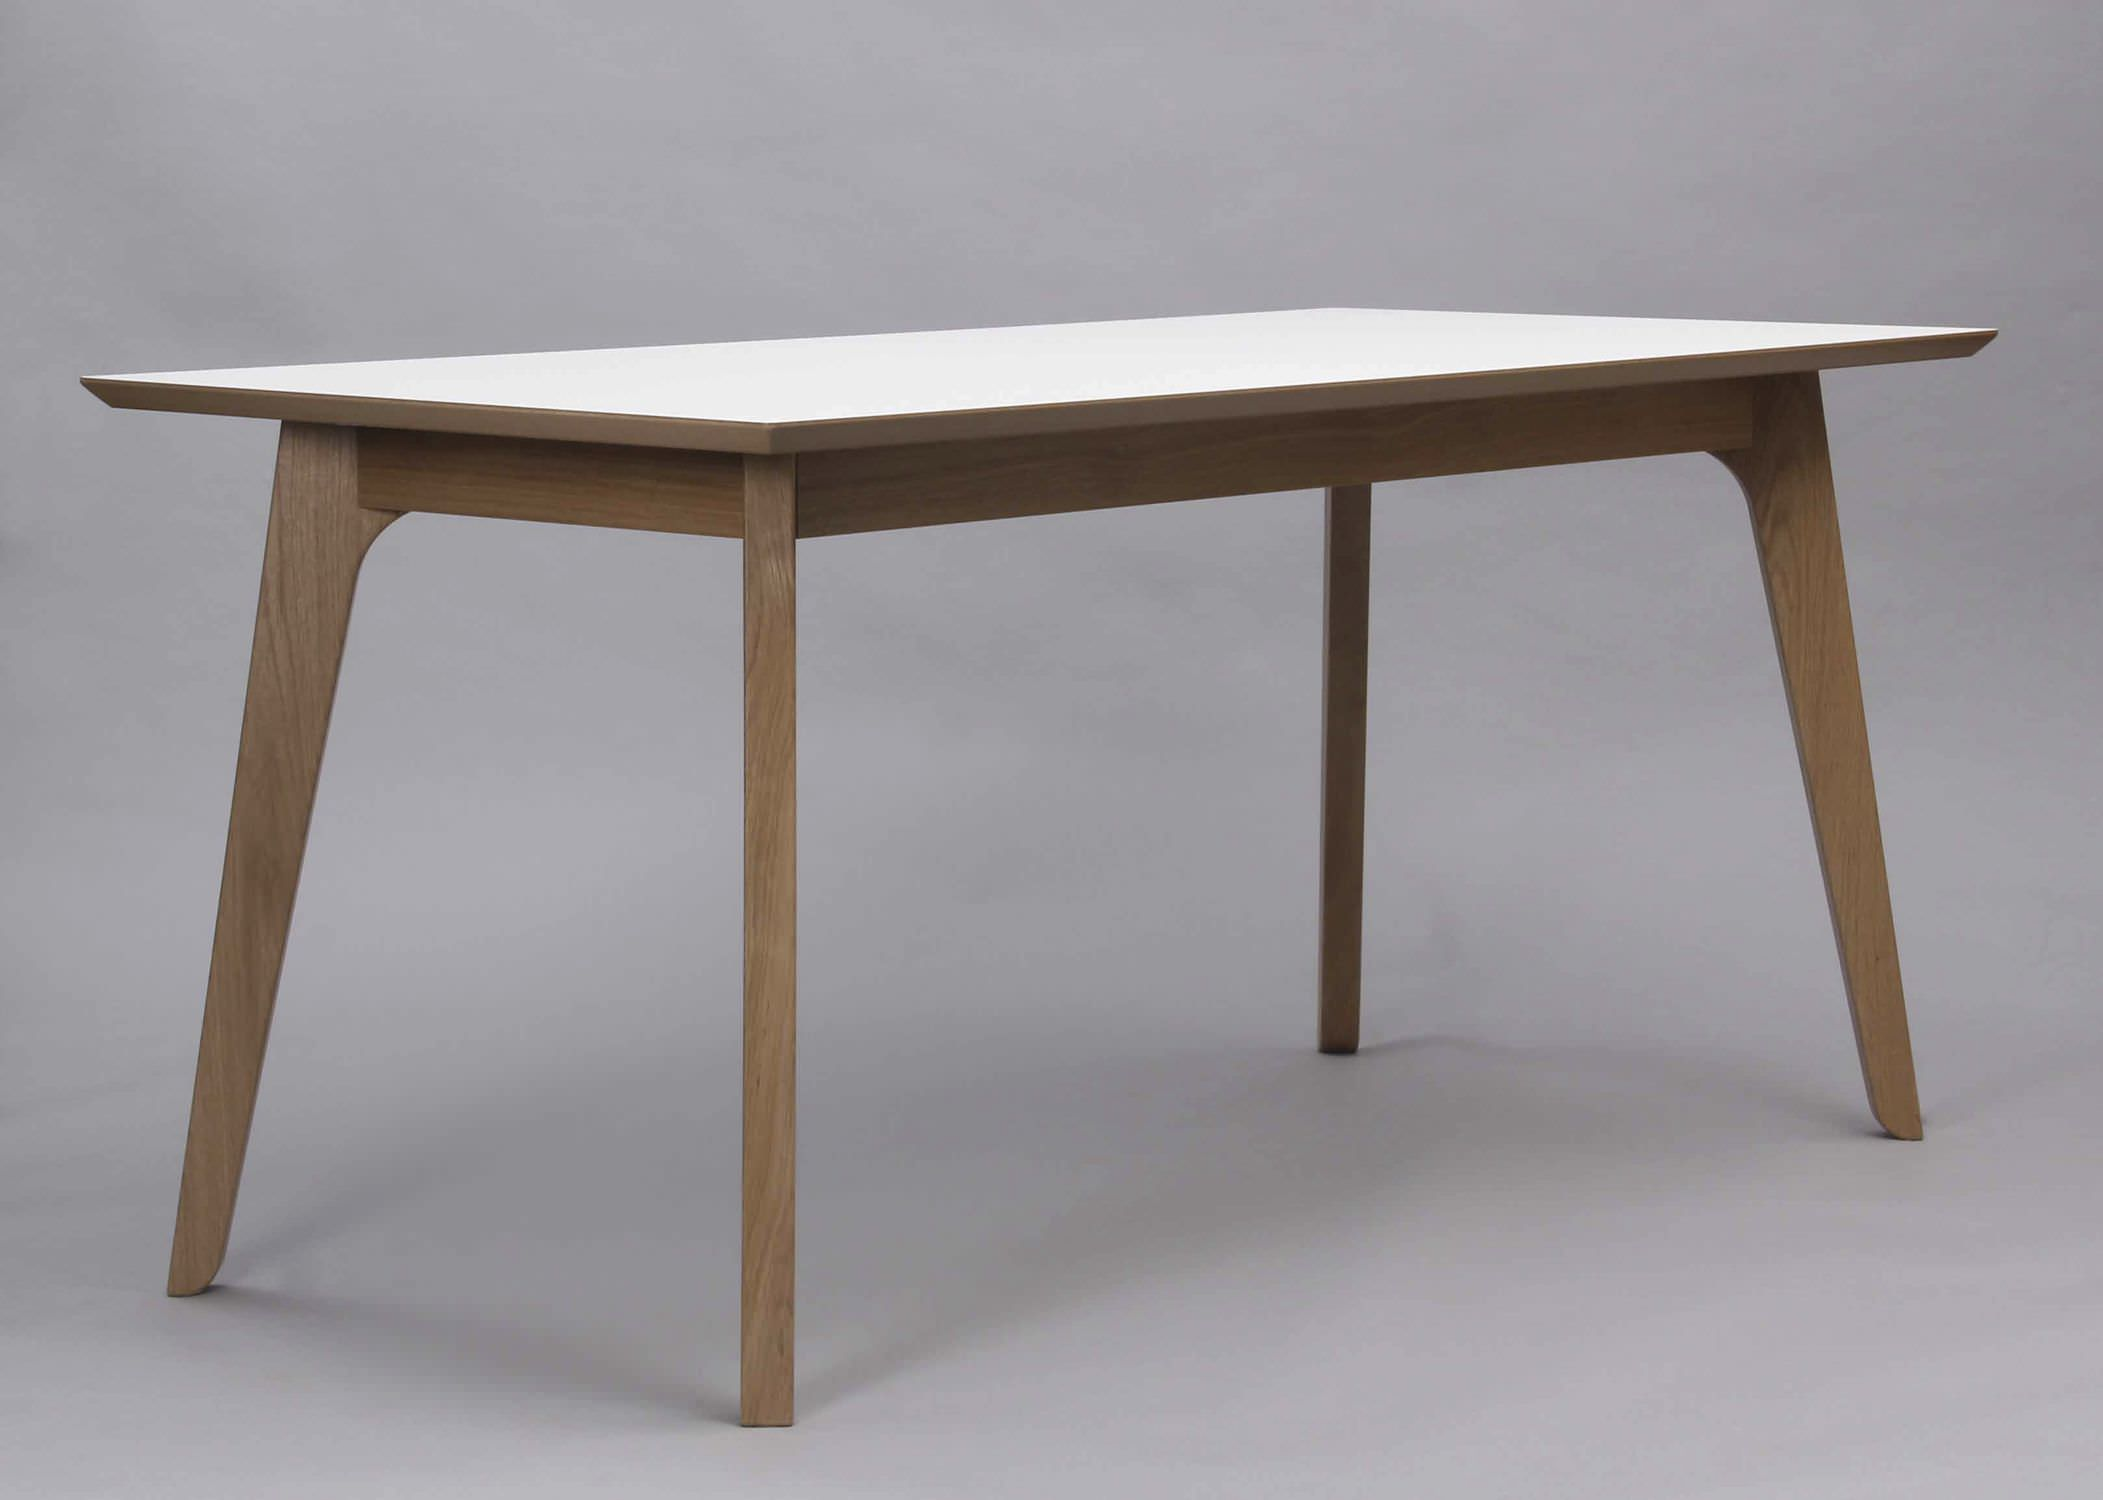 ... Contemporary Dining Table / Oak / Solid Wood / Rectangular DALBY  Naughtone ...